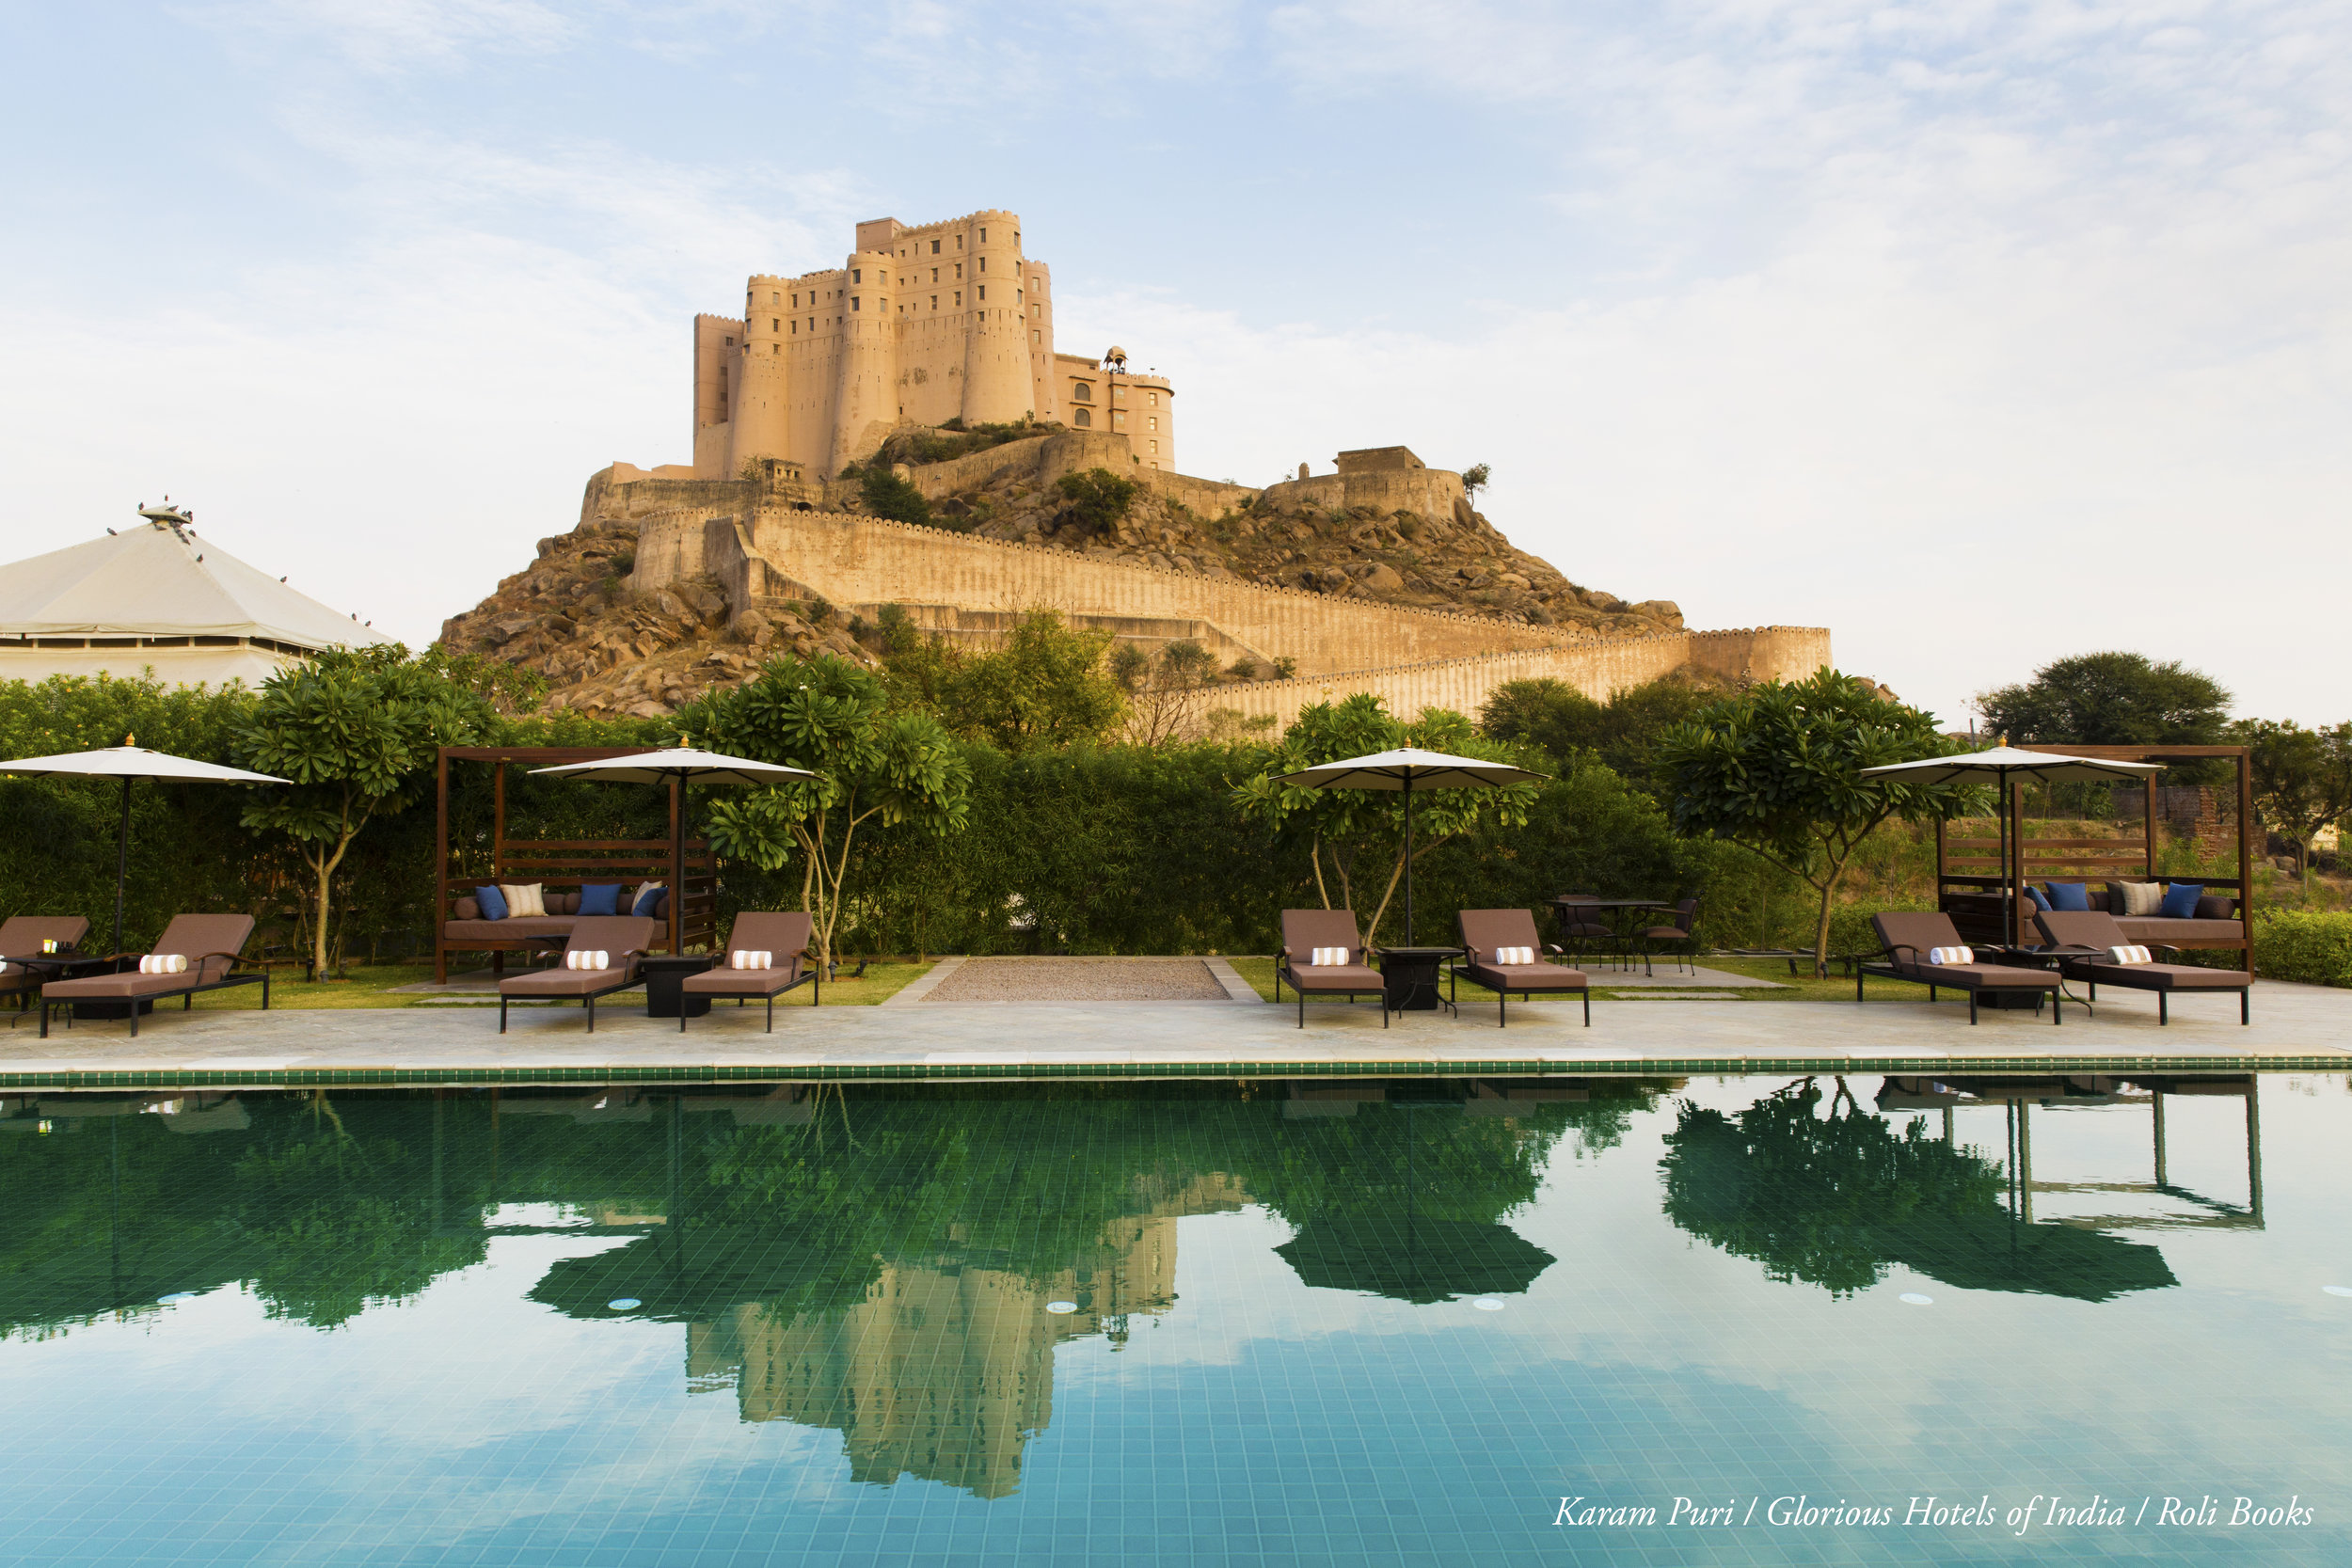 Alila Fort Bishangarh - Glorious Hotels of India - credit to Karam Puri.jpg